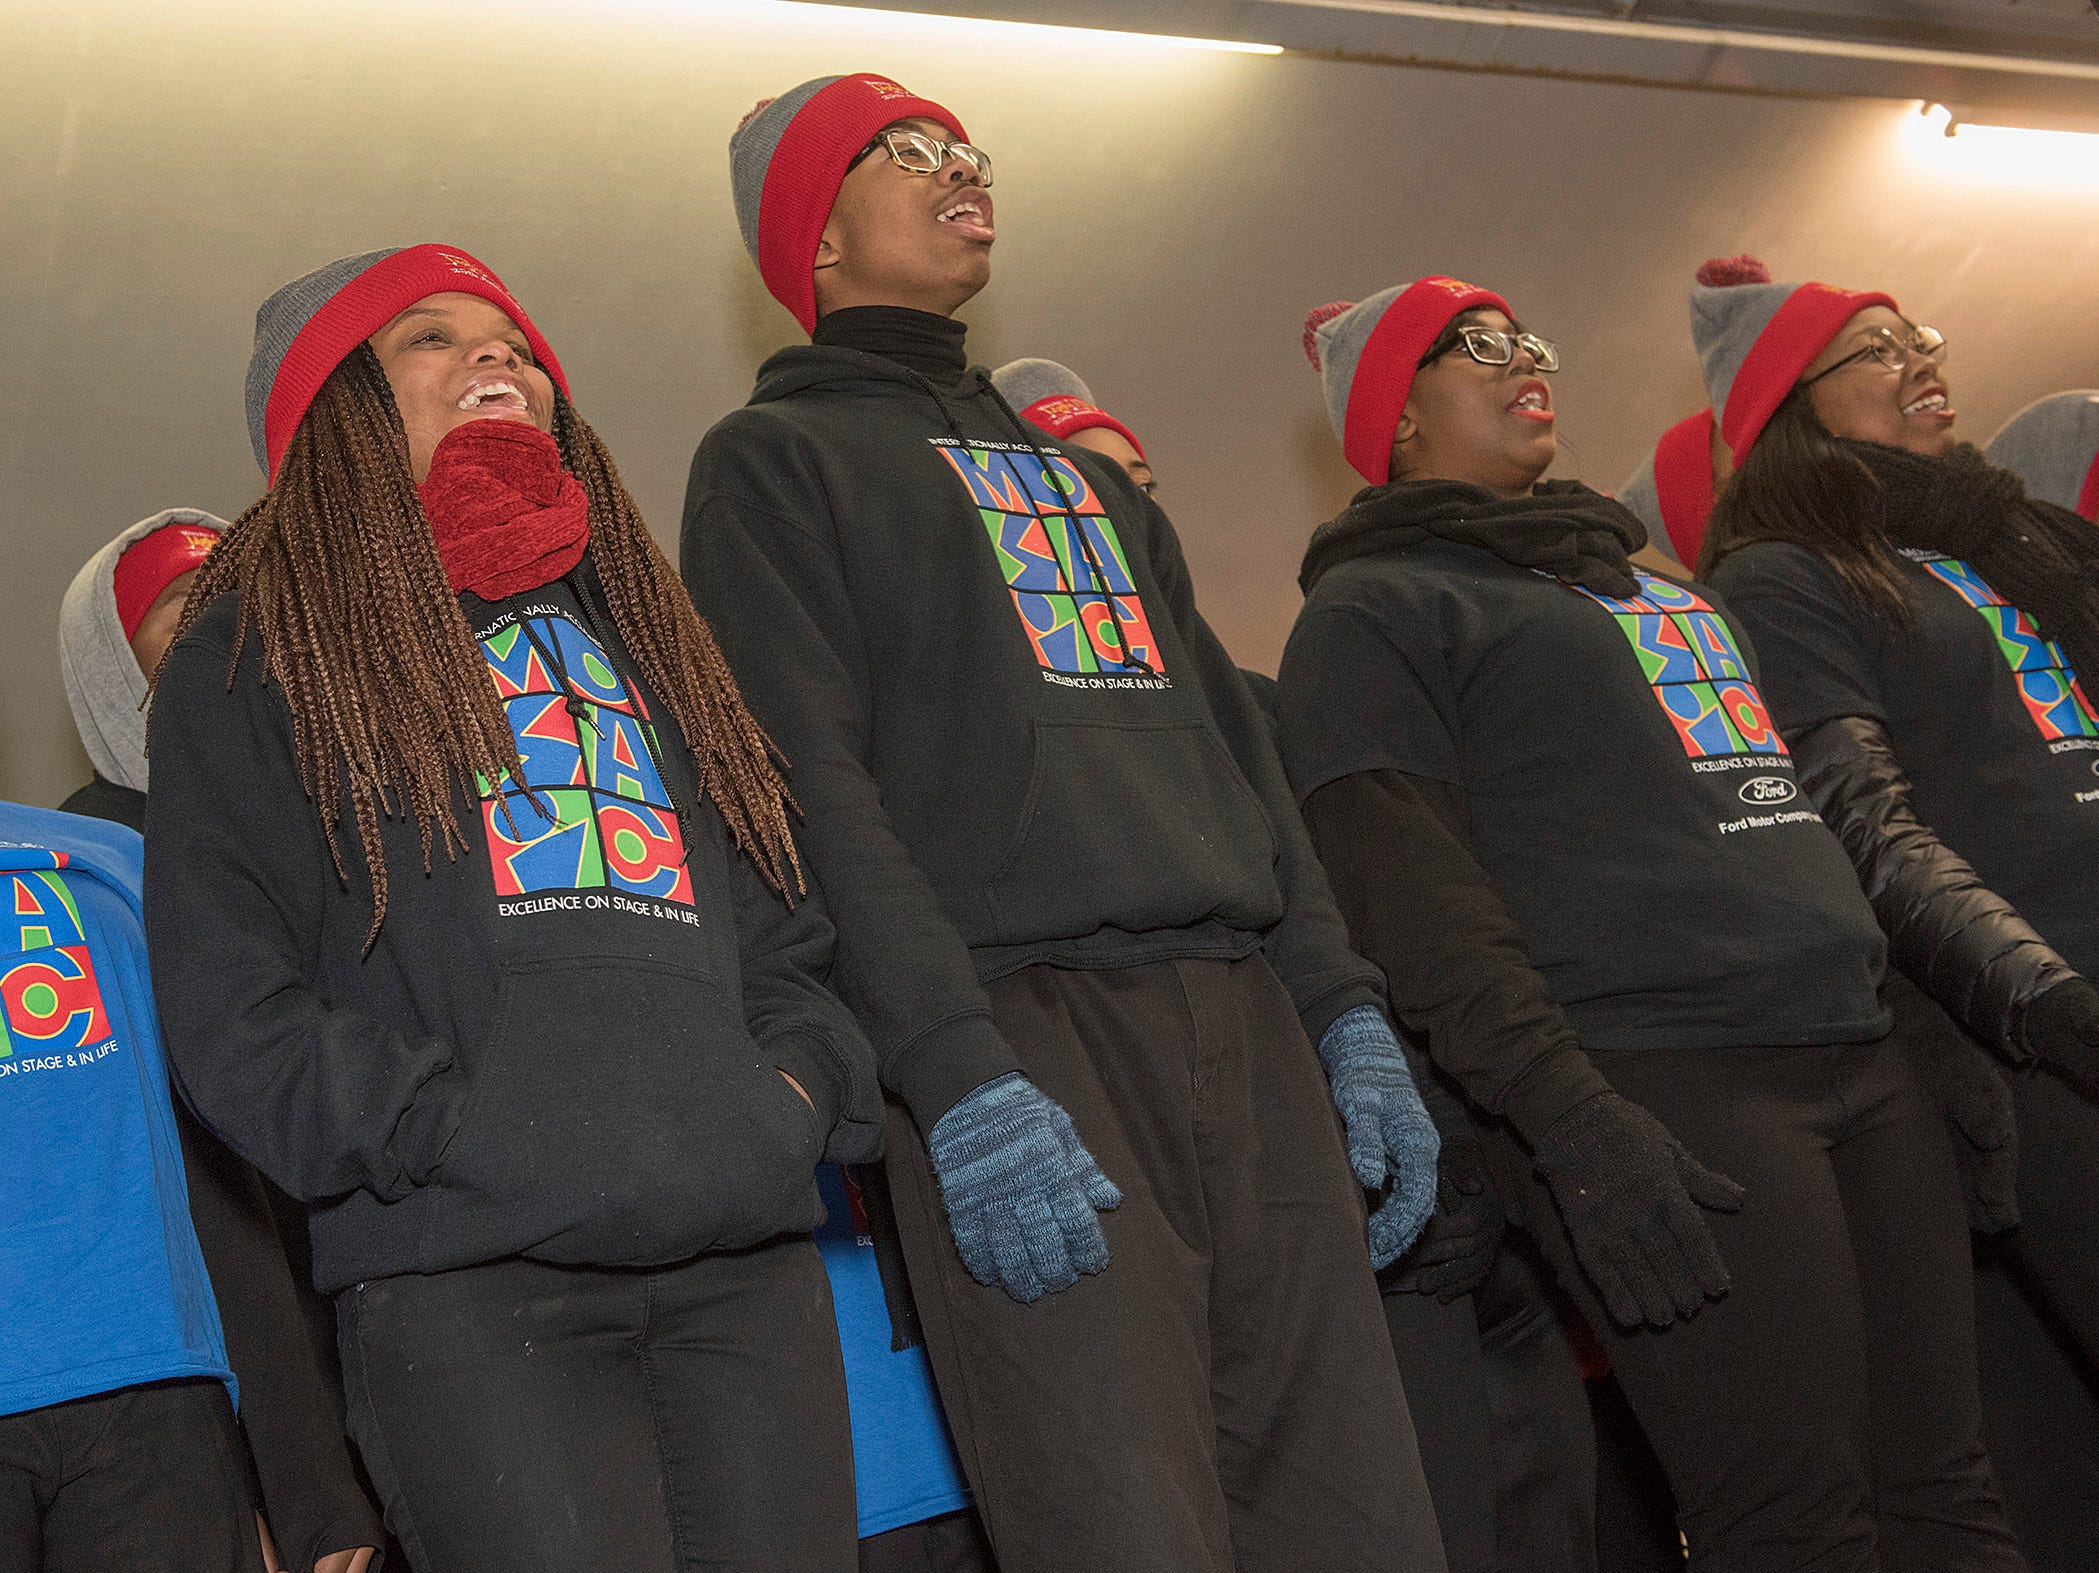 The Mosaic Youth Theater of Detroit choir spreading holiday cheer with their voices.